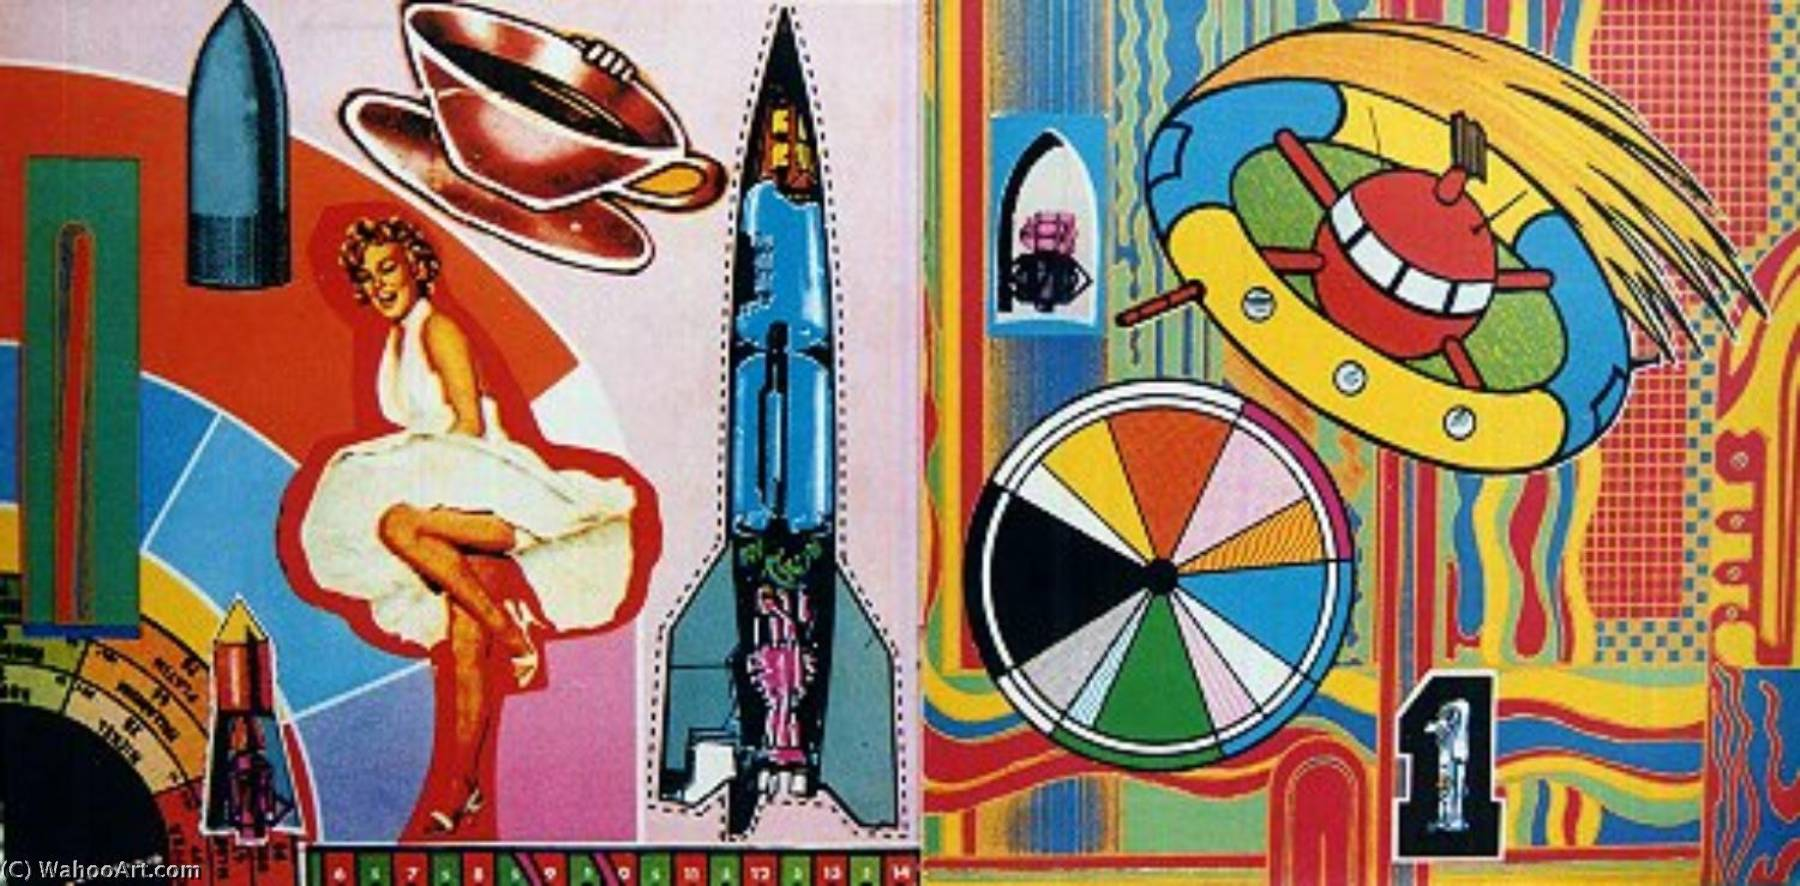 famous painting Inside gatefold of Eduardo Paolozzi